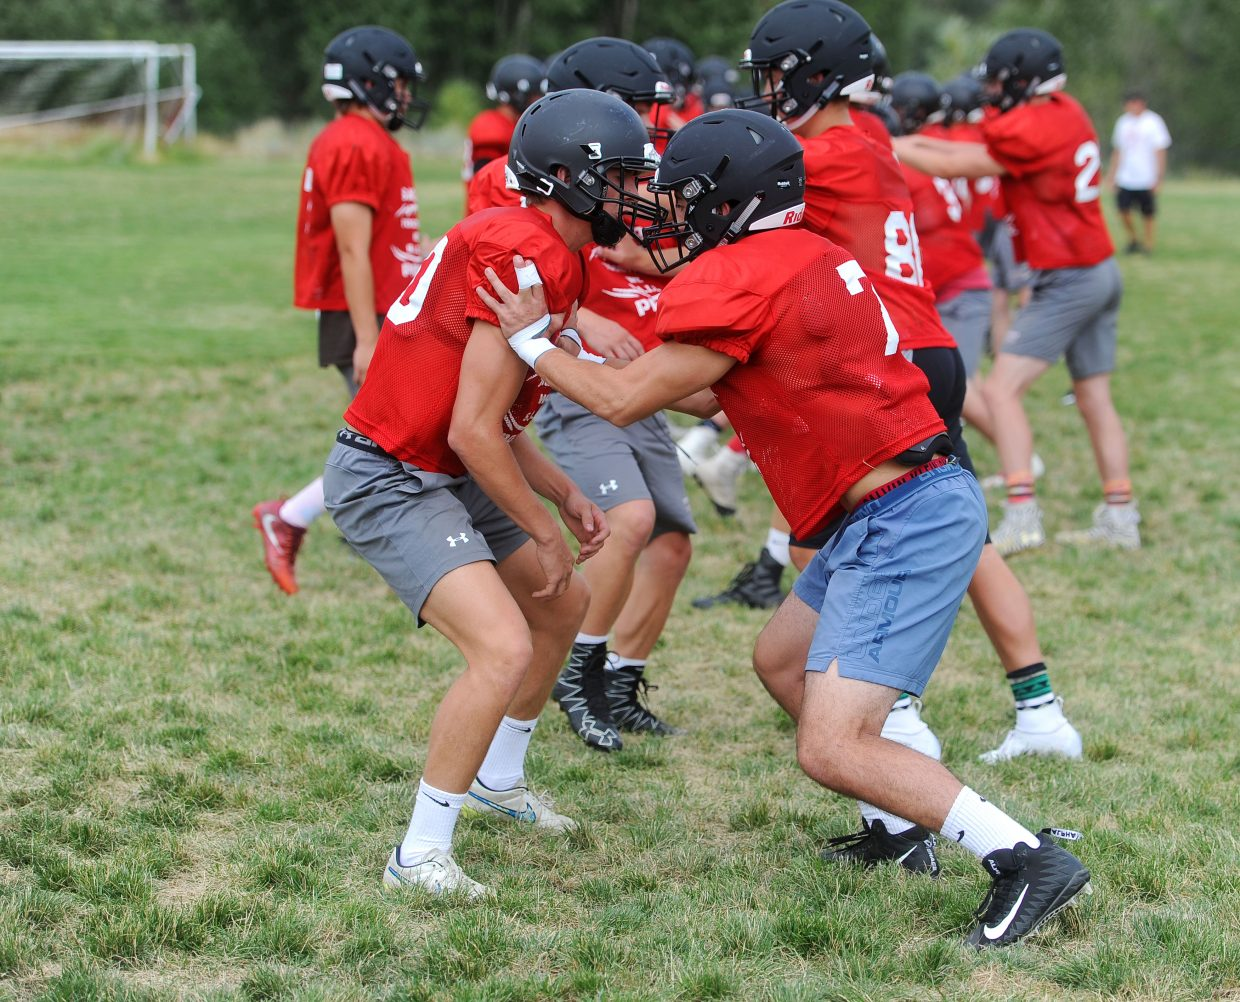 Steamboat Sailors seniors Tyden Baker, left, and Ford Louden work on their blocking skills during football practice on Tuesday, Aug. 14.